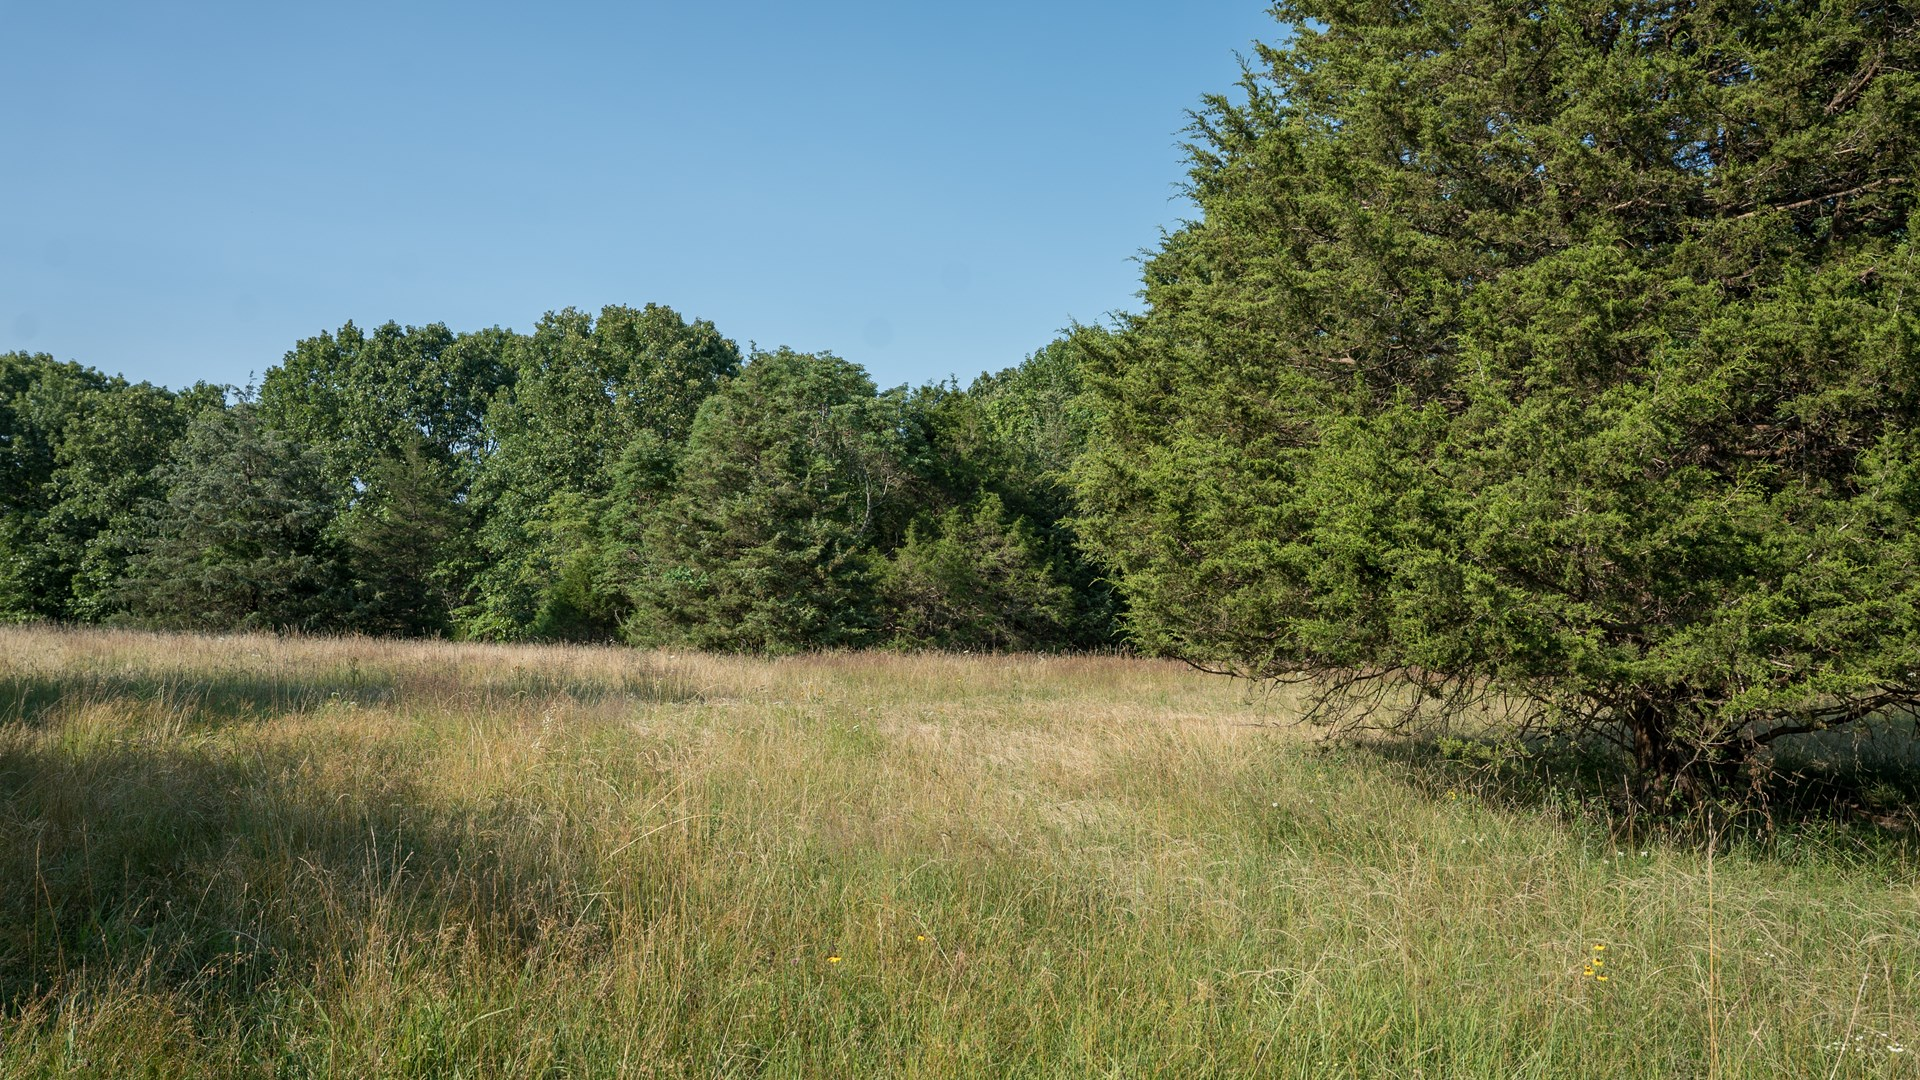 Land to Build on in South Central Missouri